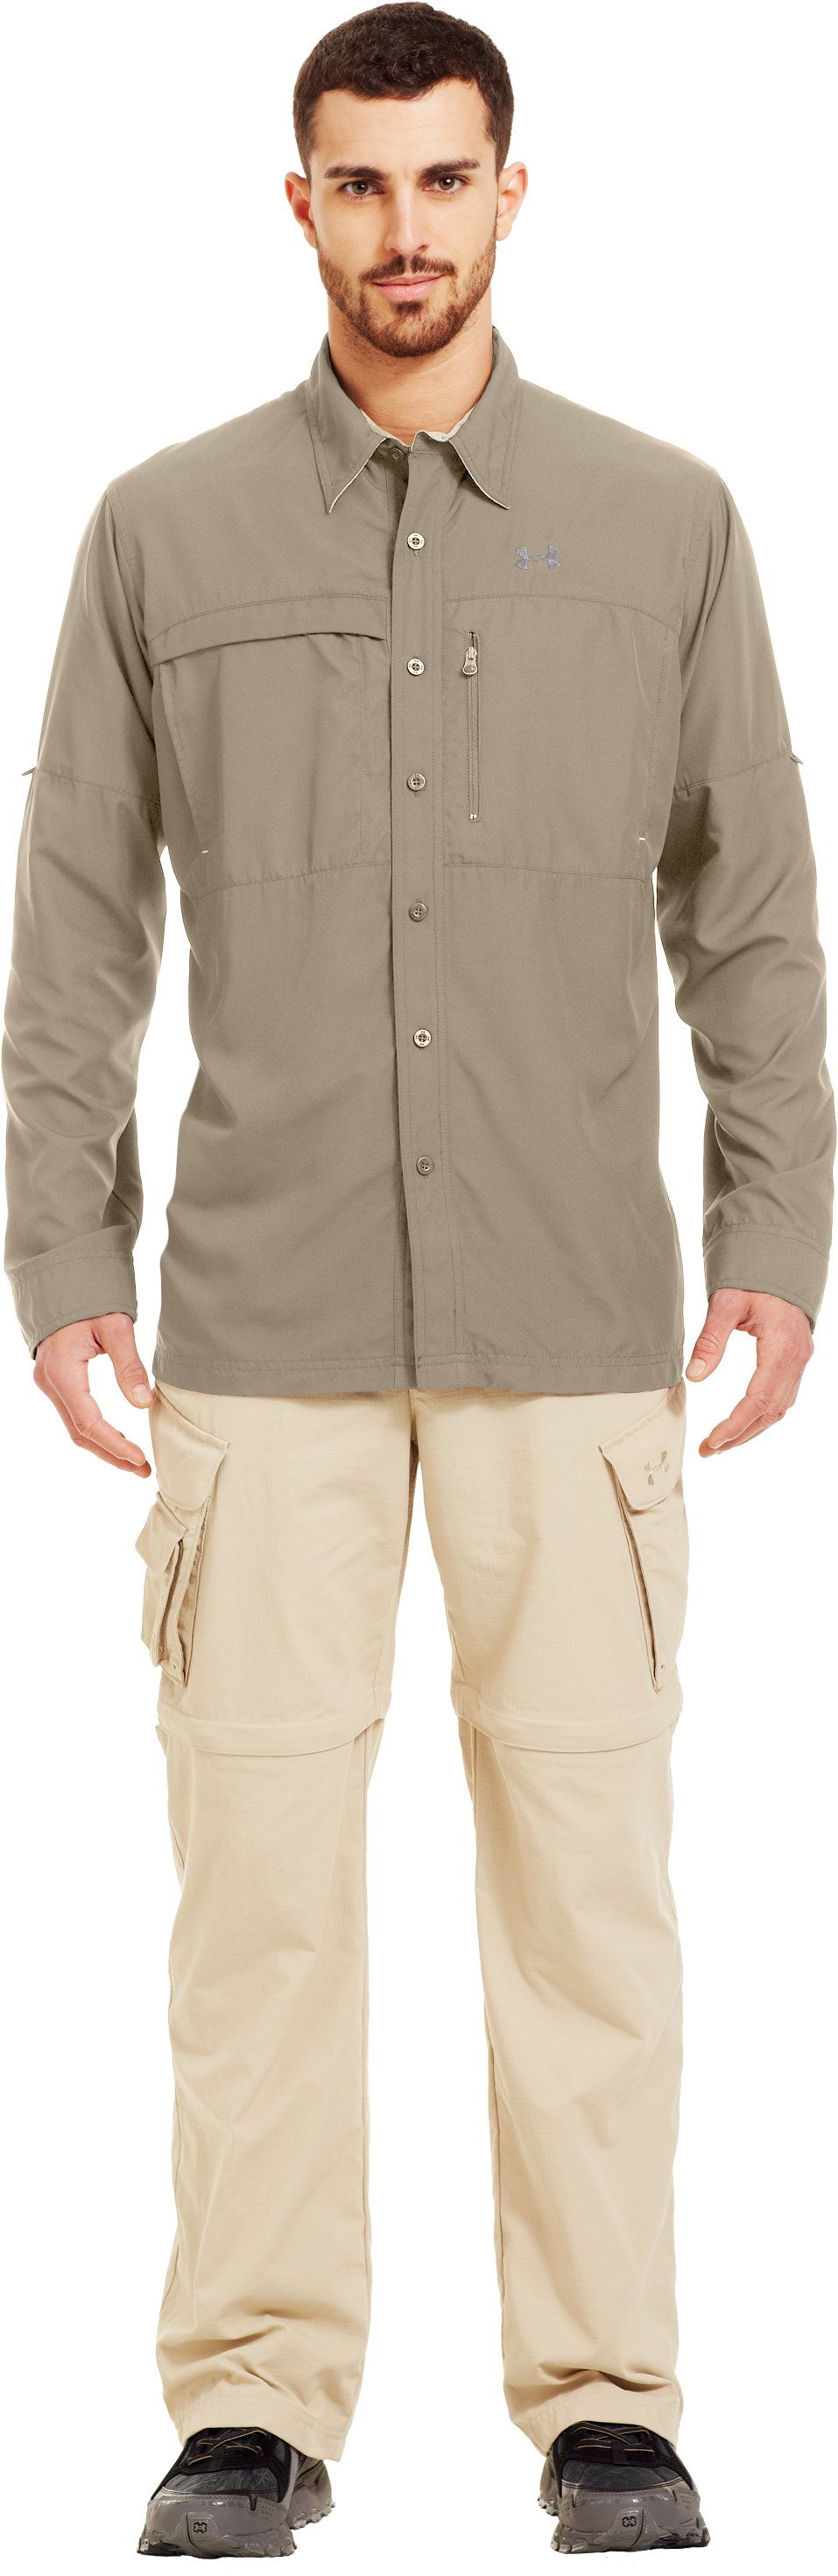 Men's Flats Guide Long Sleeve Shirt, Desert Sand, Front